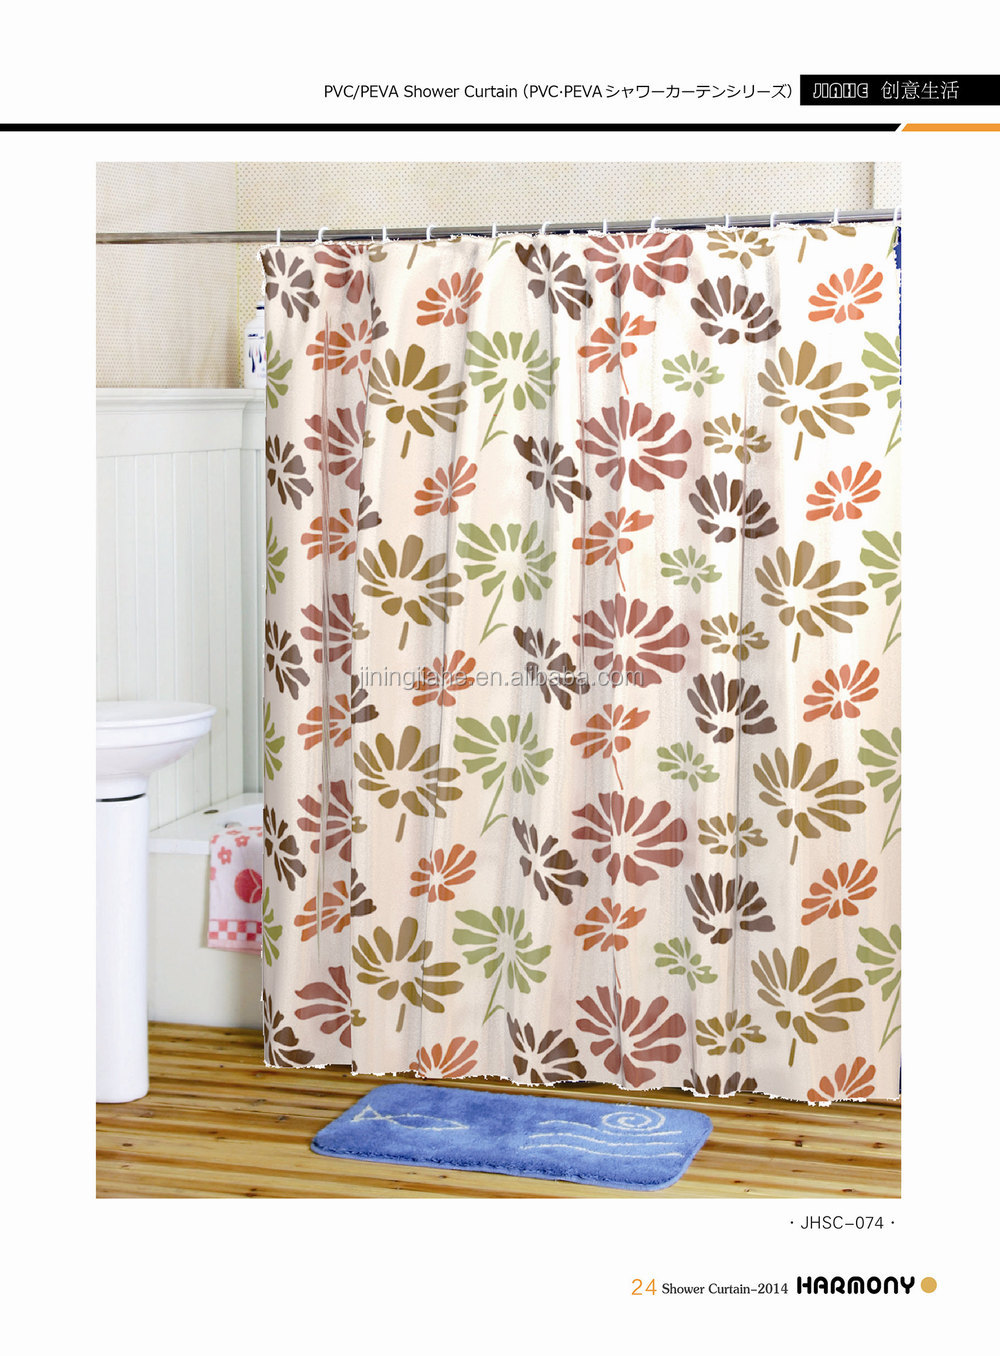 Translucent Home Goods Lace Shower Curtains Buy Home Goods Lace Shower Curtains Translucent